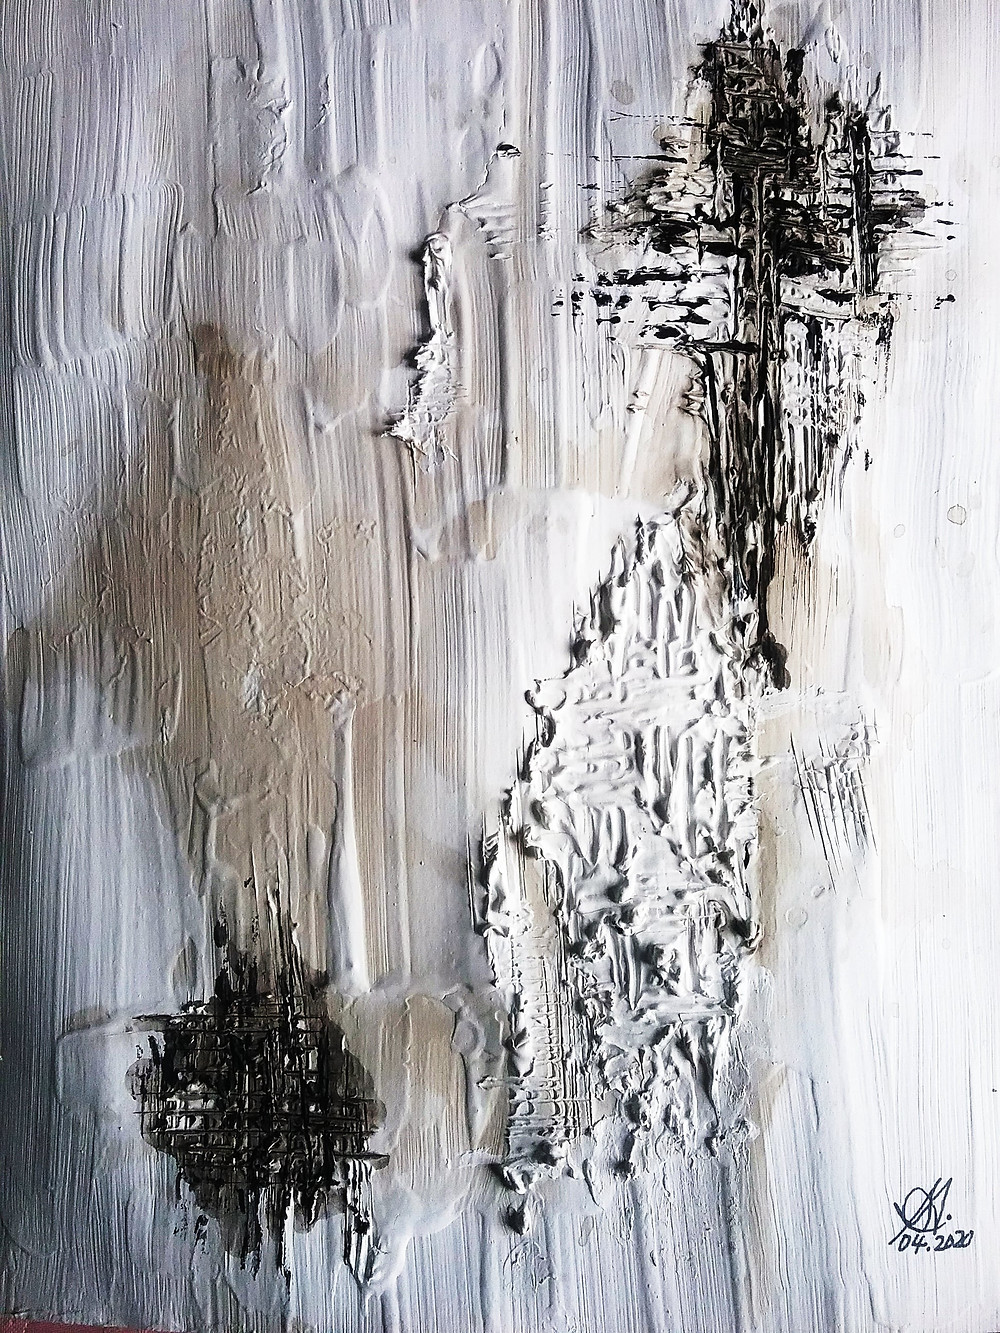 The effect of adding texture to abstract painting